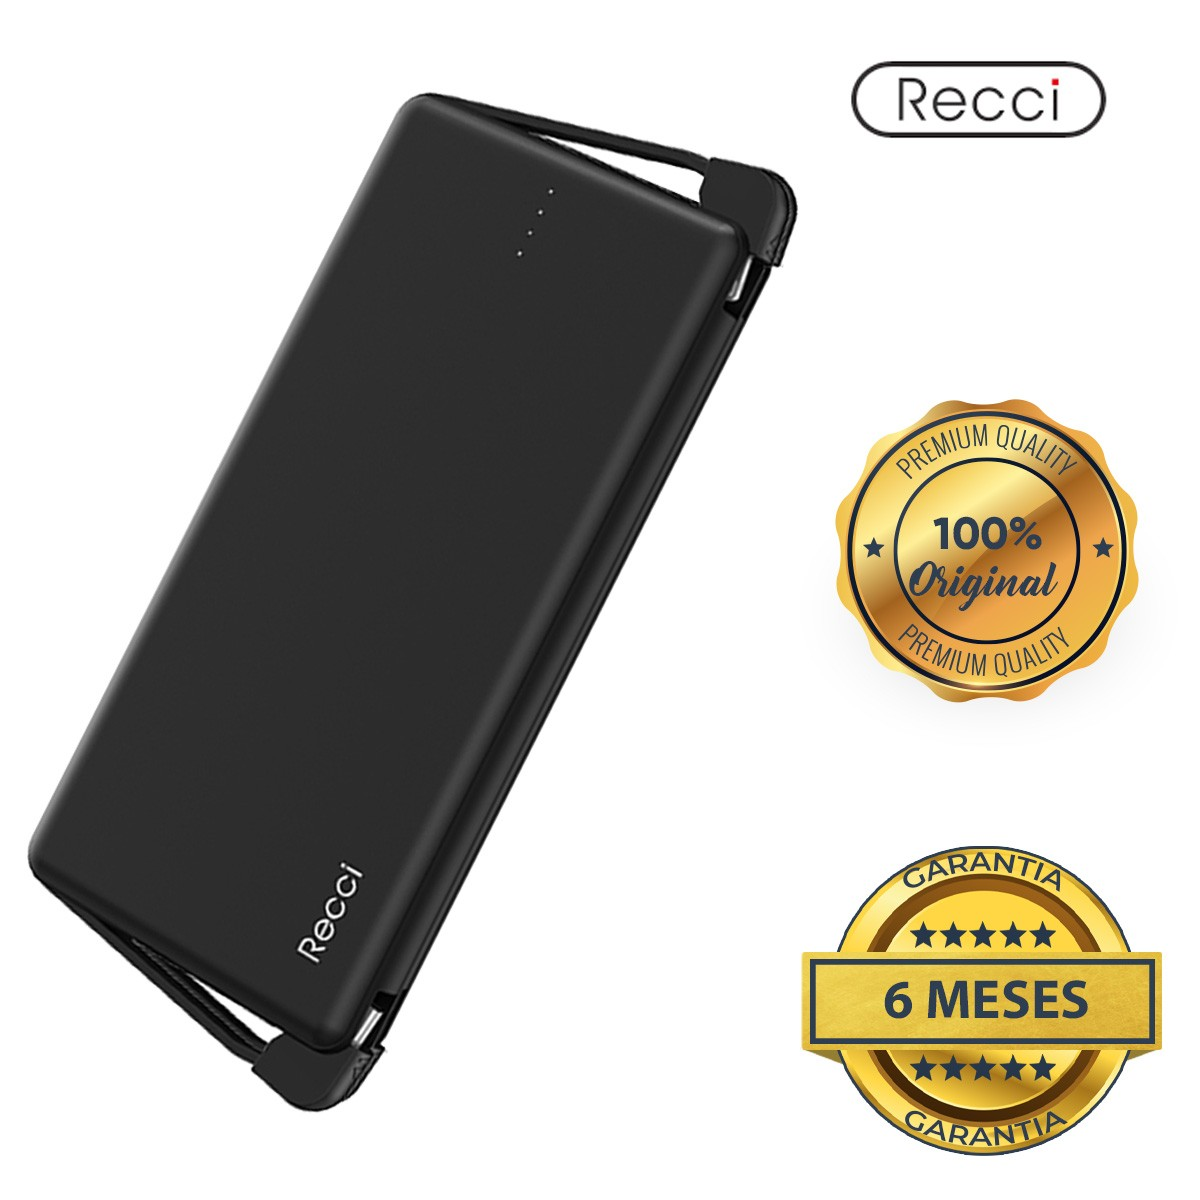 Carregador Portátil Universal Power Bank 10.000mah Recci